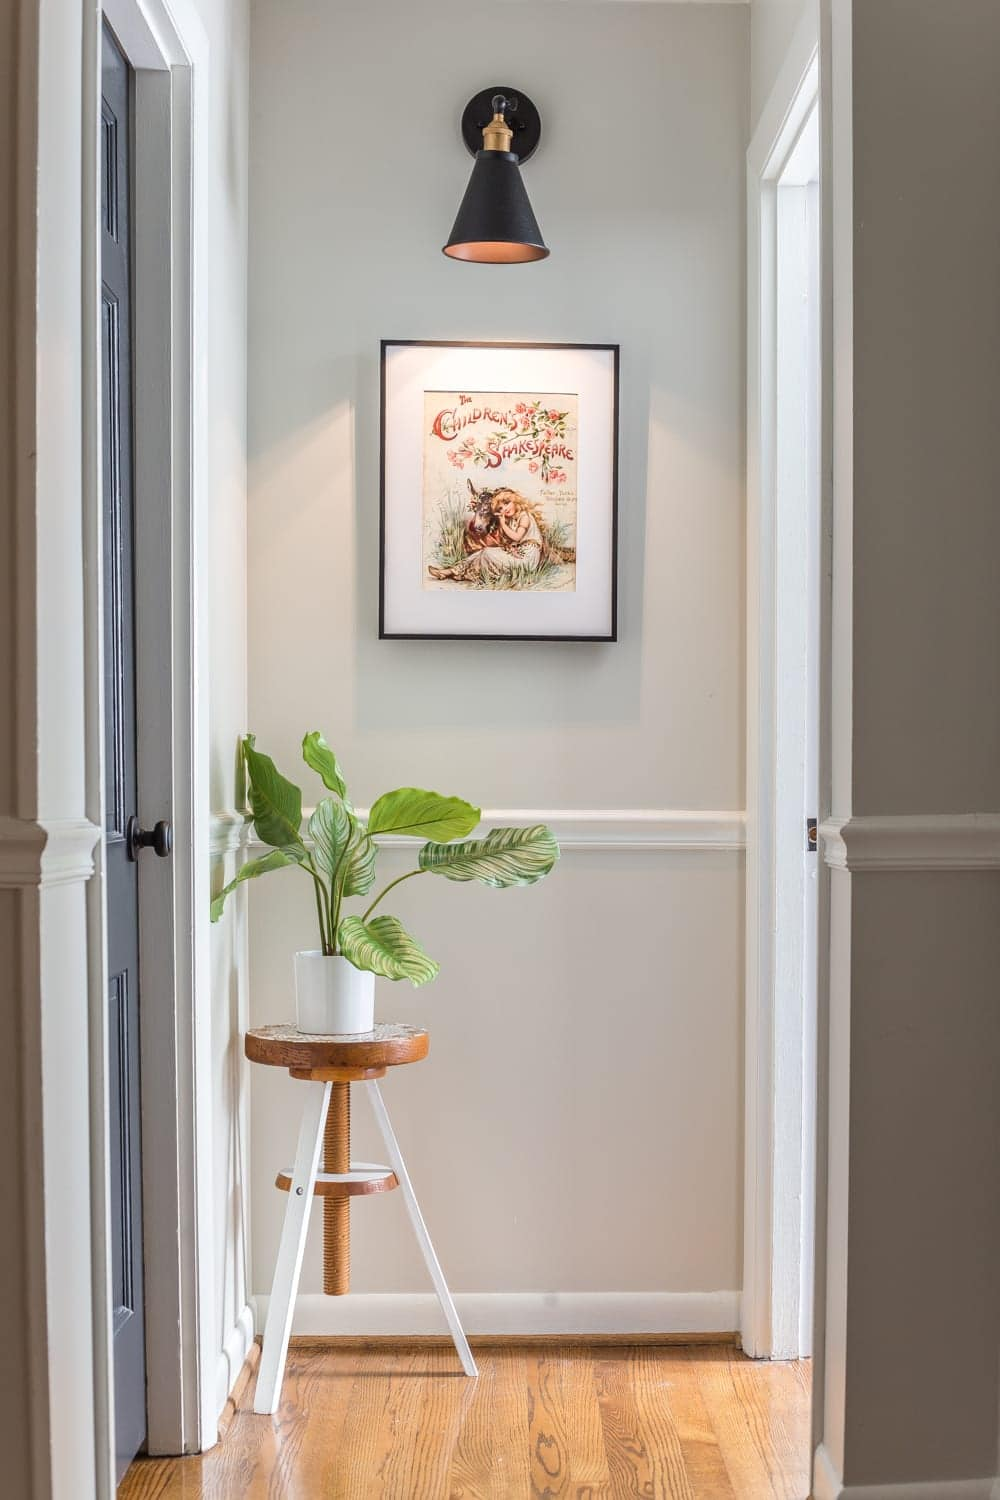 6 Tips to Decorate a Boring Hallway | blesserhouse.com - hallway art and magic light trick wall sconce accent lighting